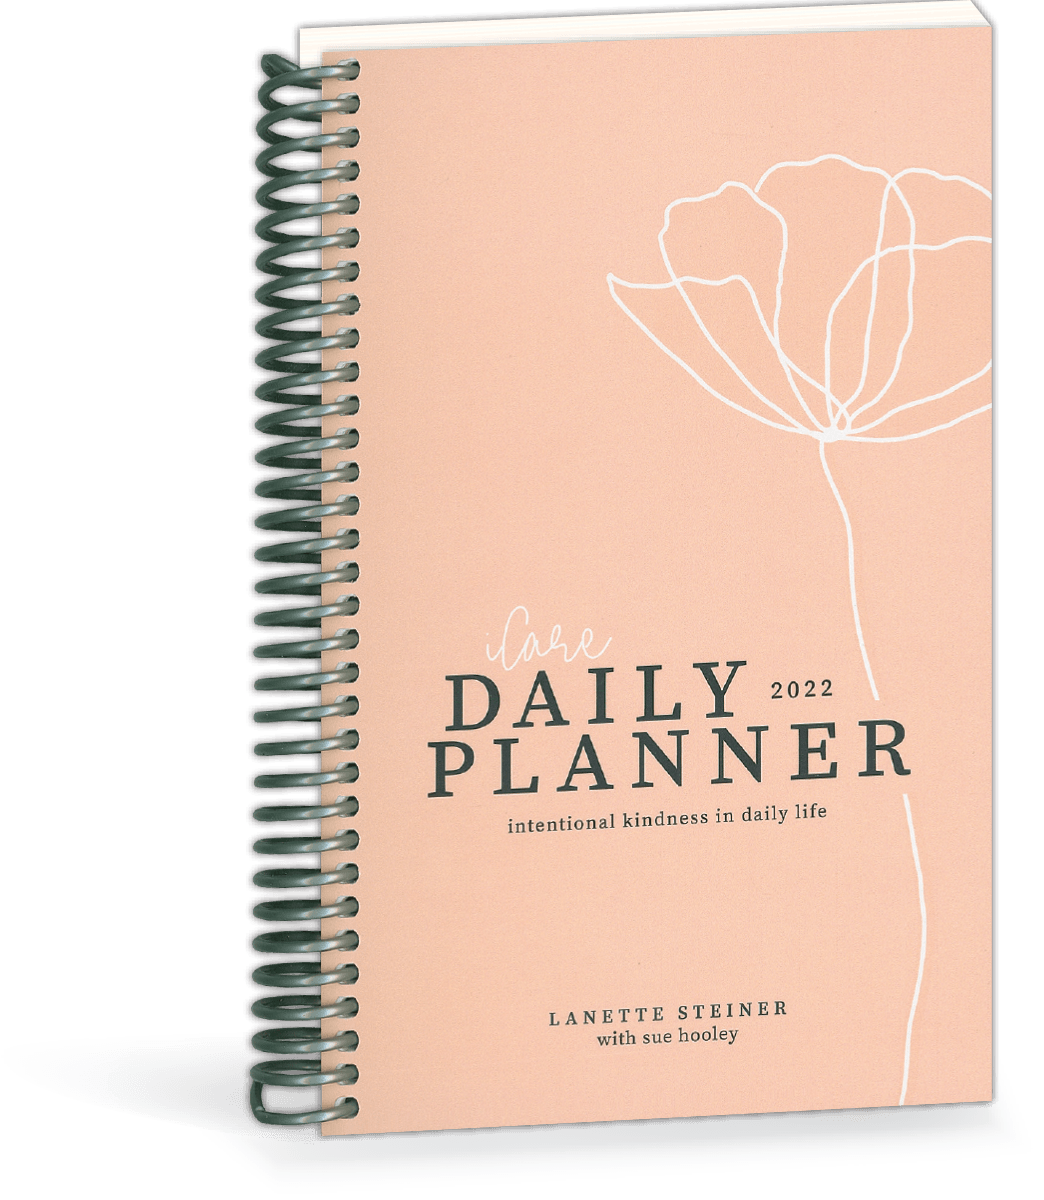 2022 iCare Daily Planner